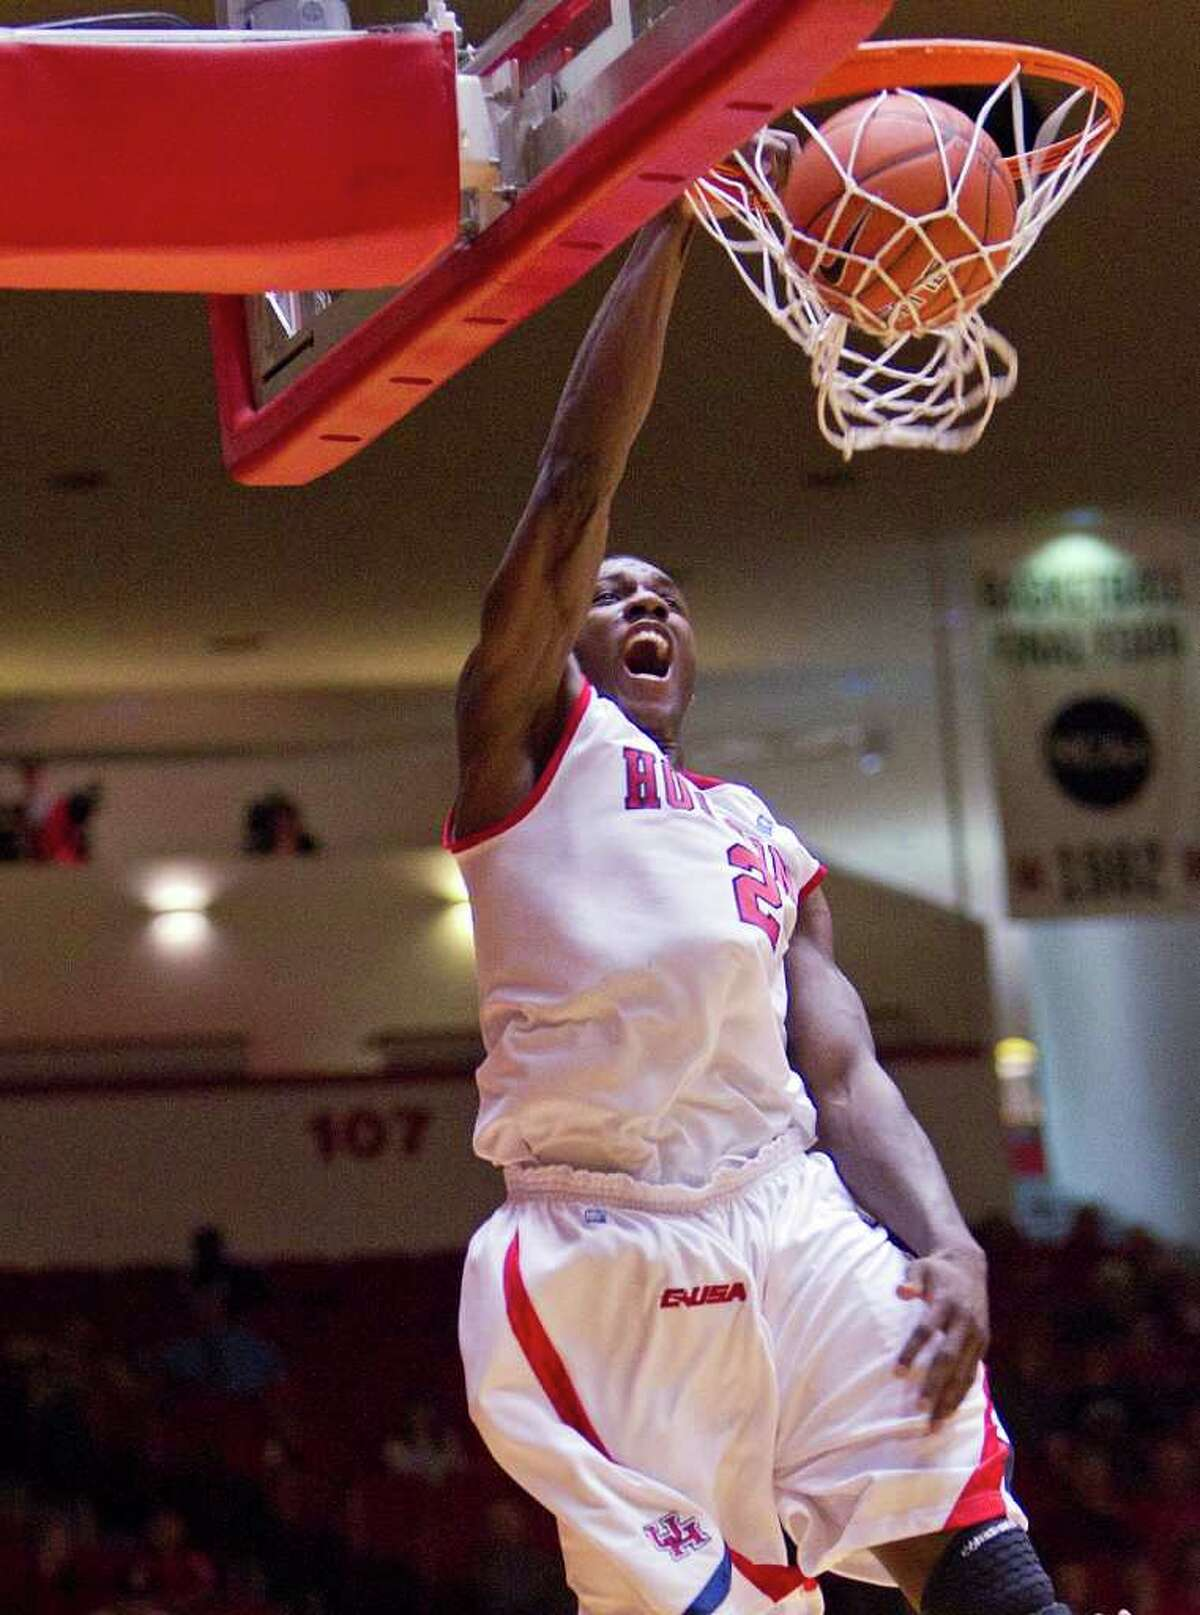 Houston's Alandise Harris (2) slams one home during the first half of an NCAA basketball game between Houston and USTA Tuesday, December 20, 2011 in Houston.